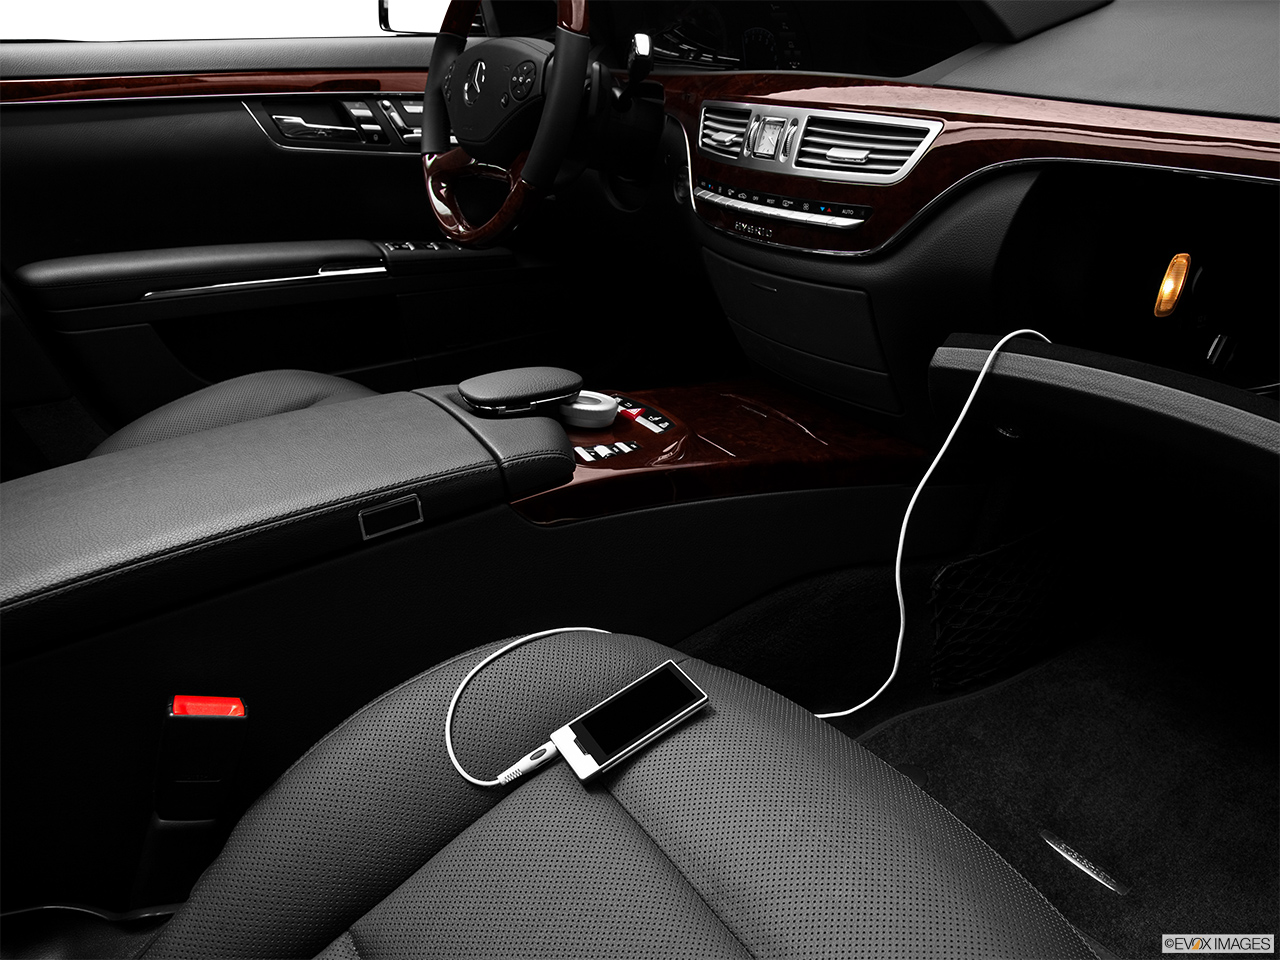 2012 Mercedes-Benz S-Class Hybrid S400 Zune and auxiliary jack